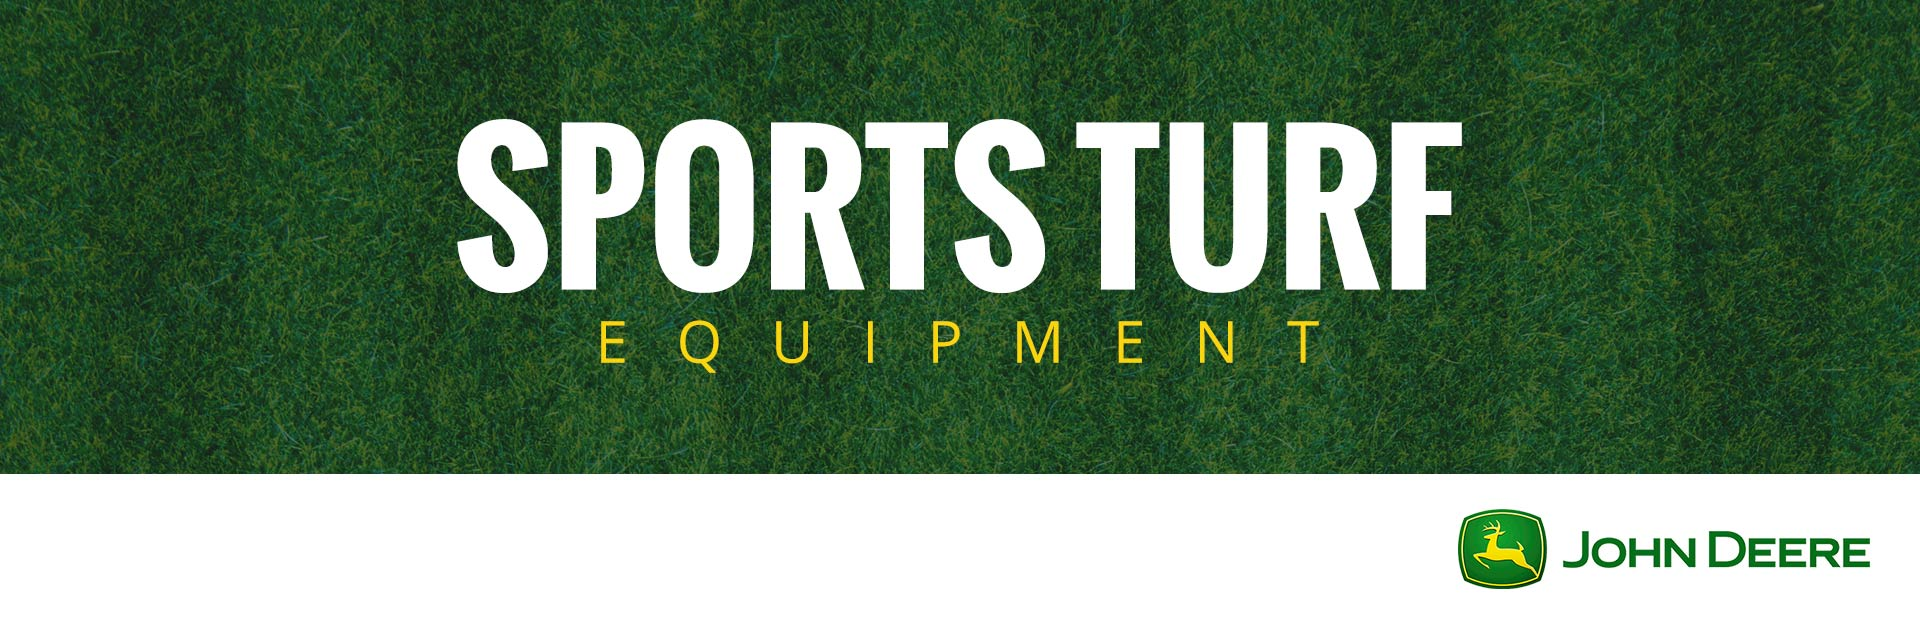 John Deere: Sports Turf Equipment